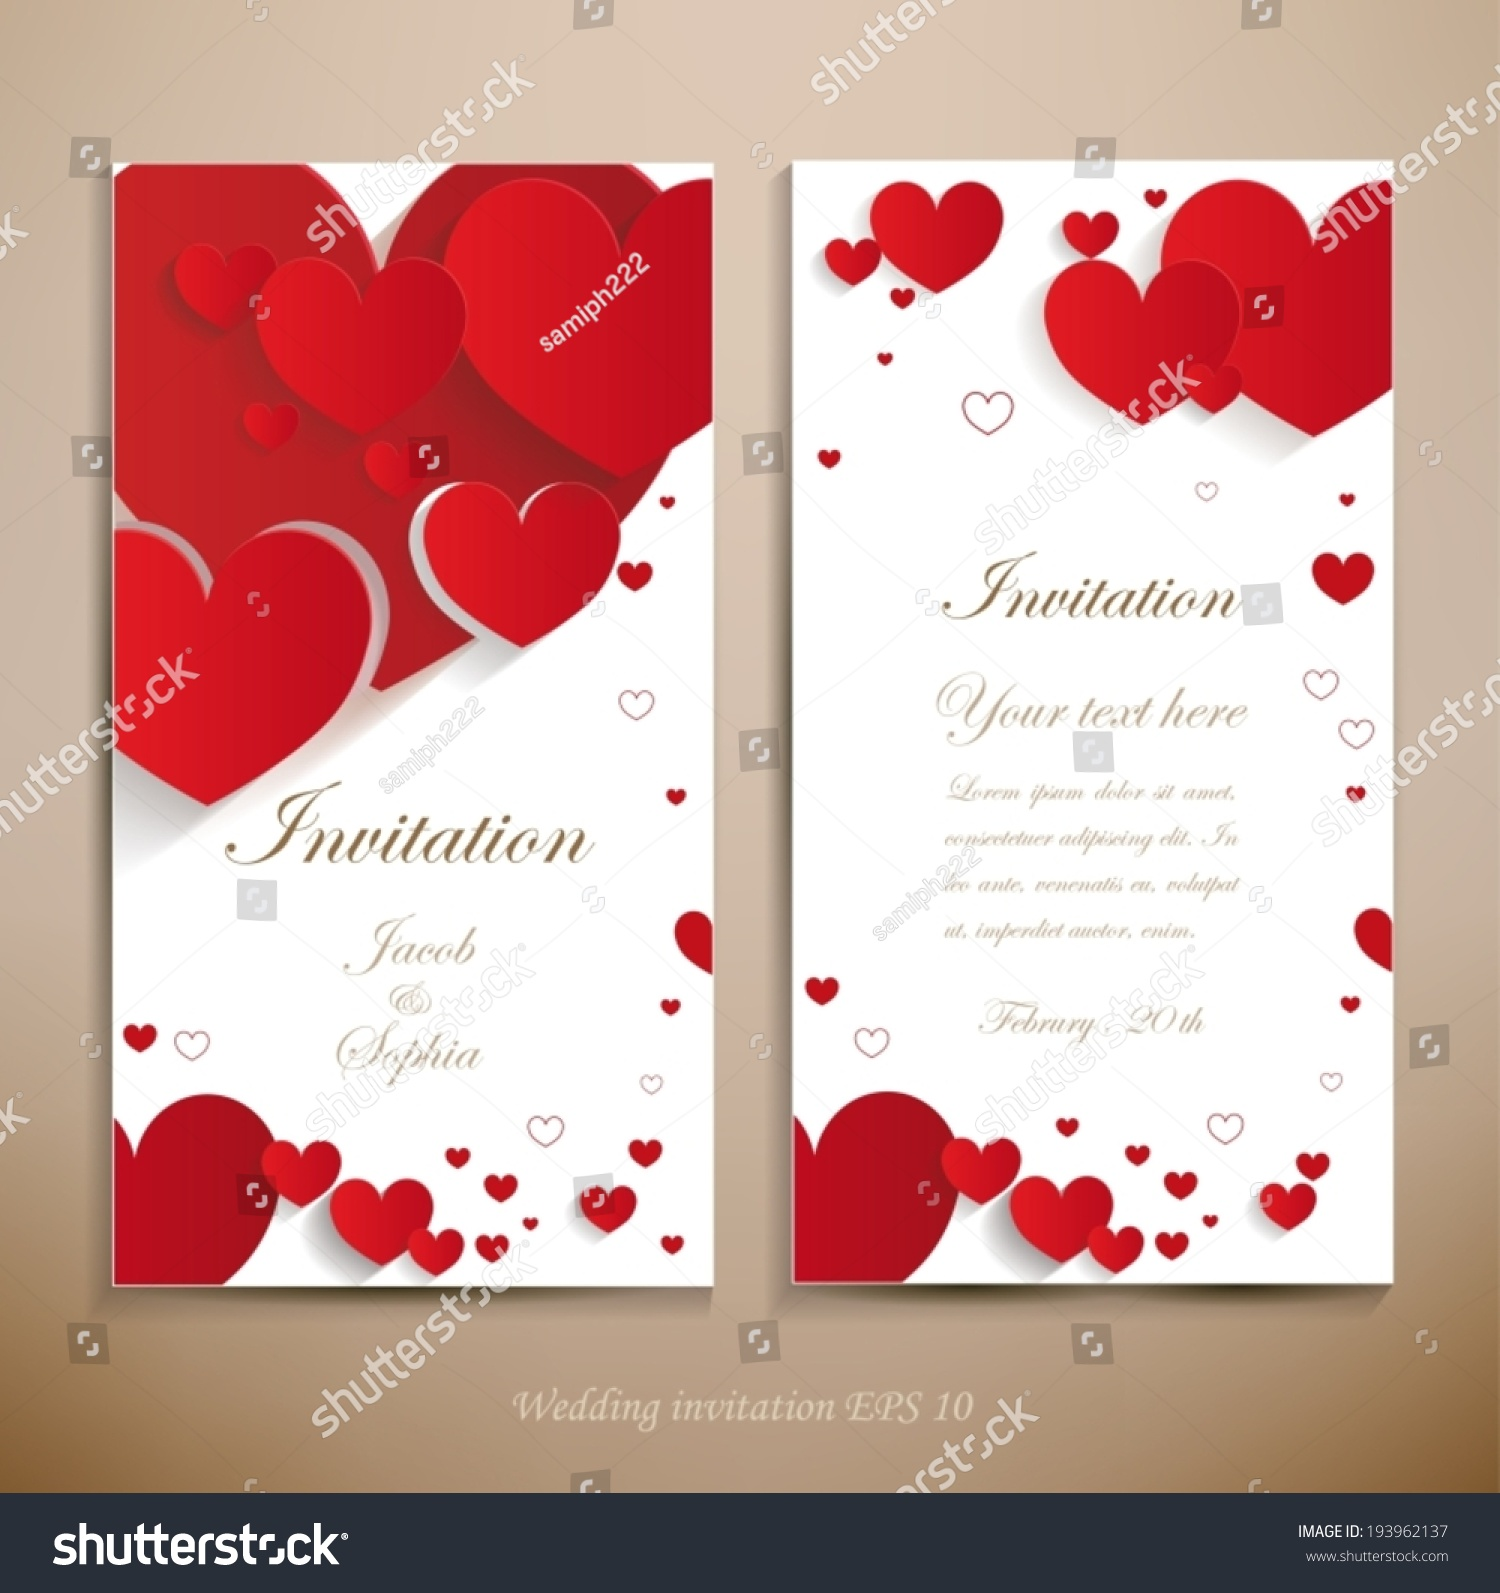 Awesome Red And White Wedding Invitations Elaboration - Invitations ...